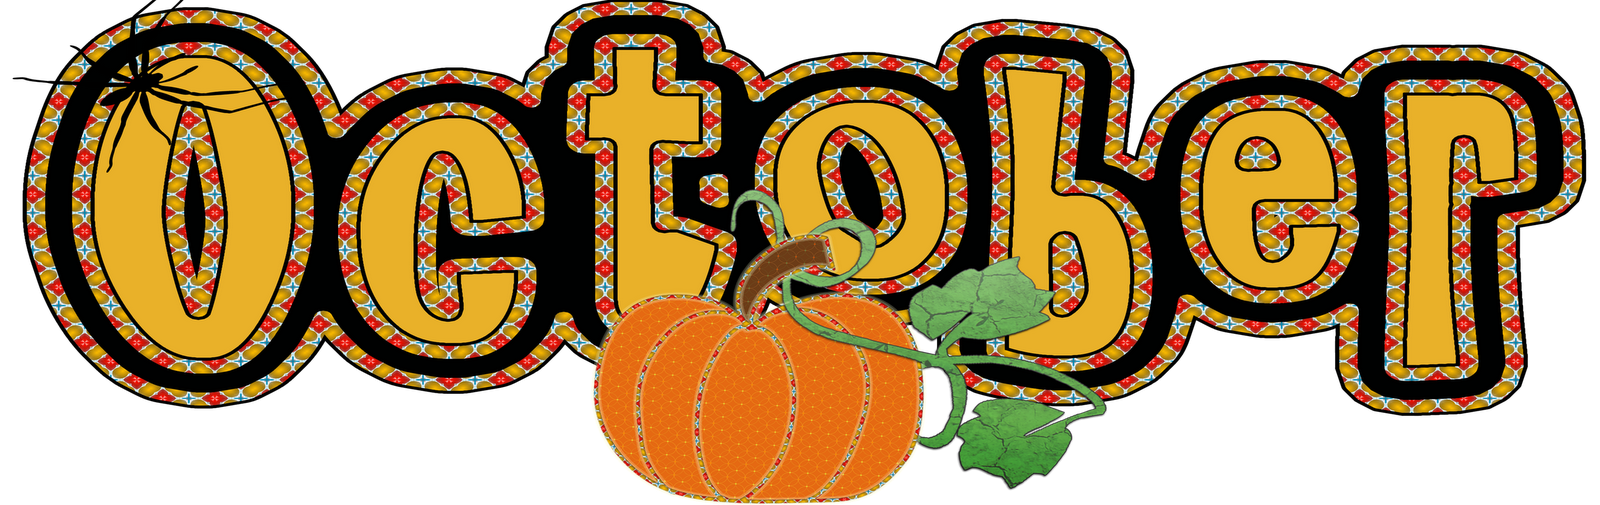 October clip art clipart images gallery for free download.